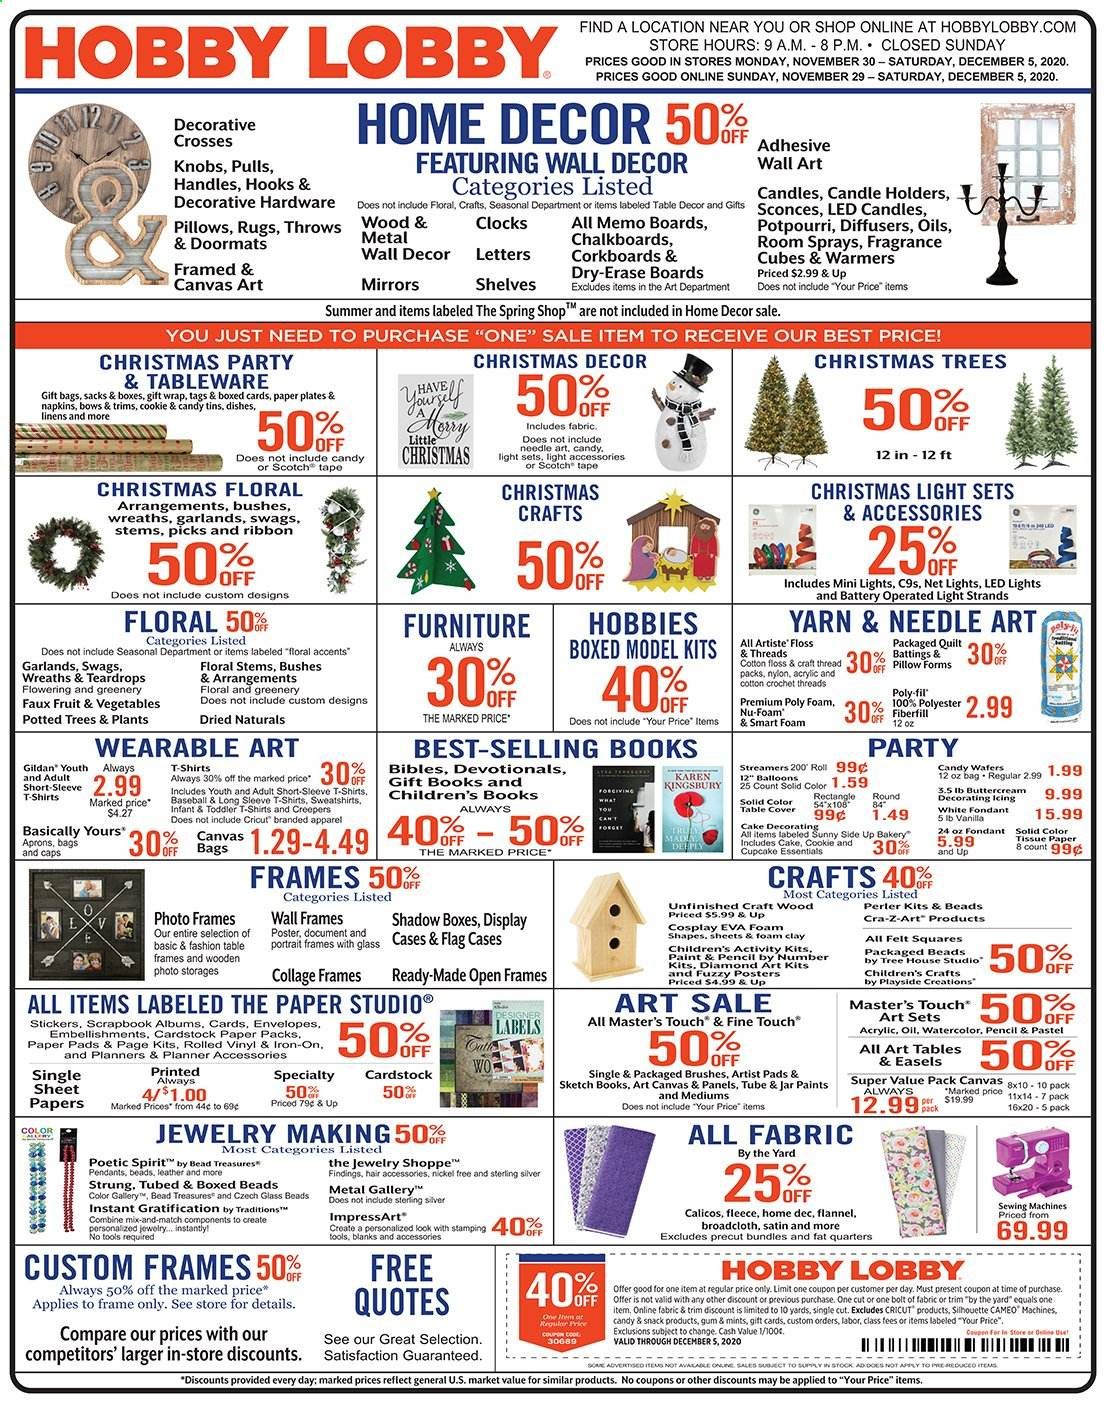 Hobby Lobby Flyer - 11.29.2020 - 12.05.2020 - Sales products - box, candle, cupcake, diffuser, fragrance, Furniture, LED light, light set, linens, rug, sheet, shelf, shelves, shirt, solid, sticker, sweatshirt, table, tableware, tape, wafers, wall decor, handles, hook, christmas tree, christmas decor, iron, jar, pillow, plate, quilt, pendant, christmas lights, paper plate, cake, candy, Vegetables, snack, gift wrap, gum, envelope, vinyl, Fruit, napkins, ribbon, vegetable, Paint, tools, craft, essentials, led, spring, throws. Page 1.